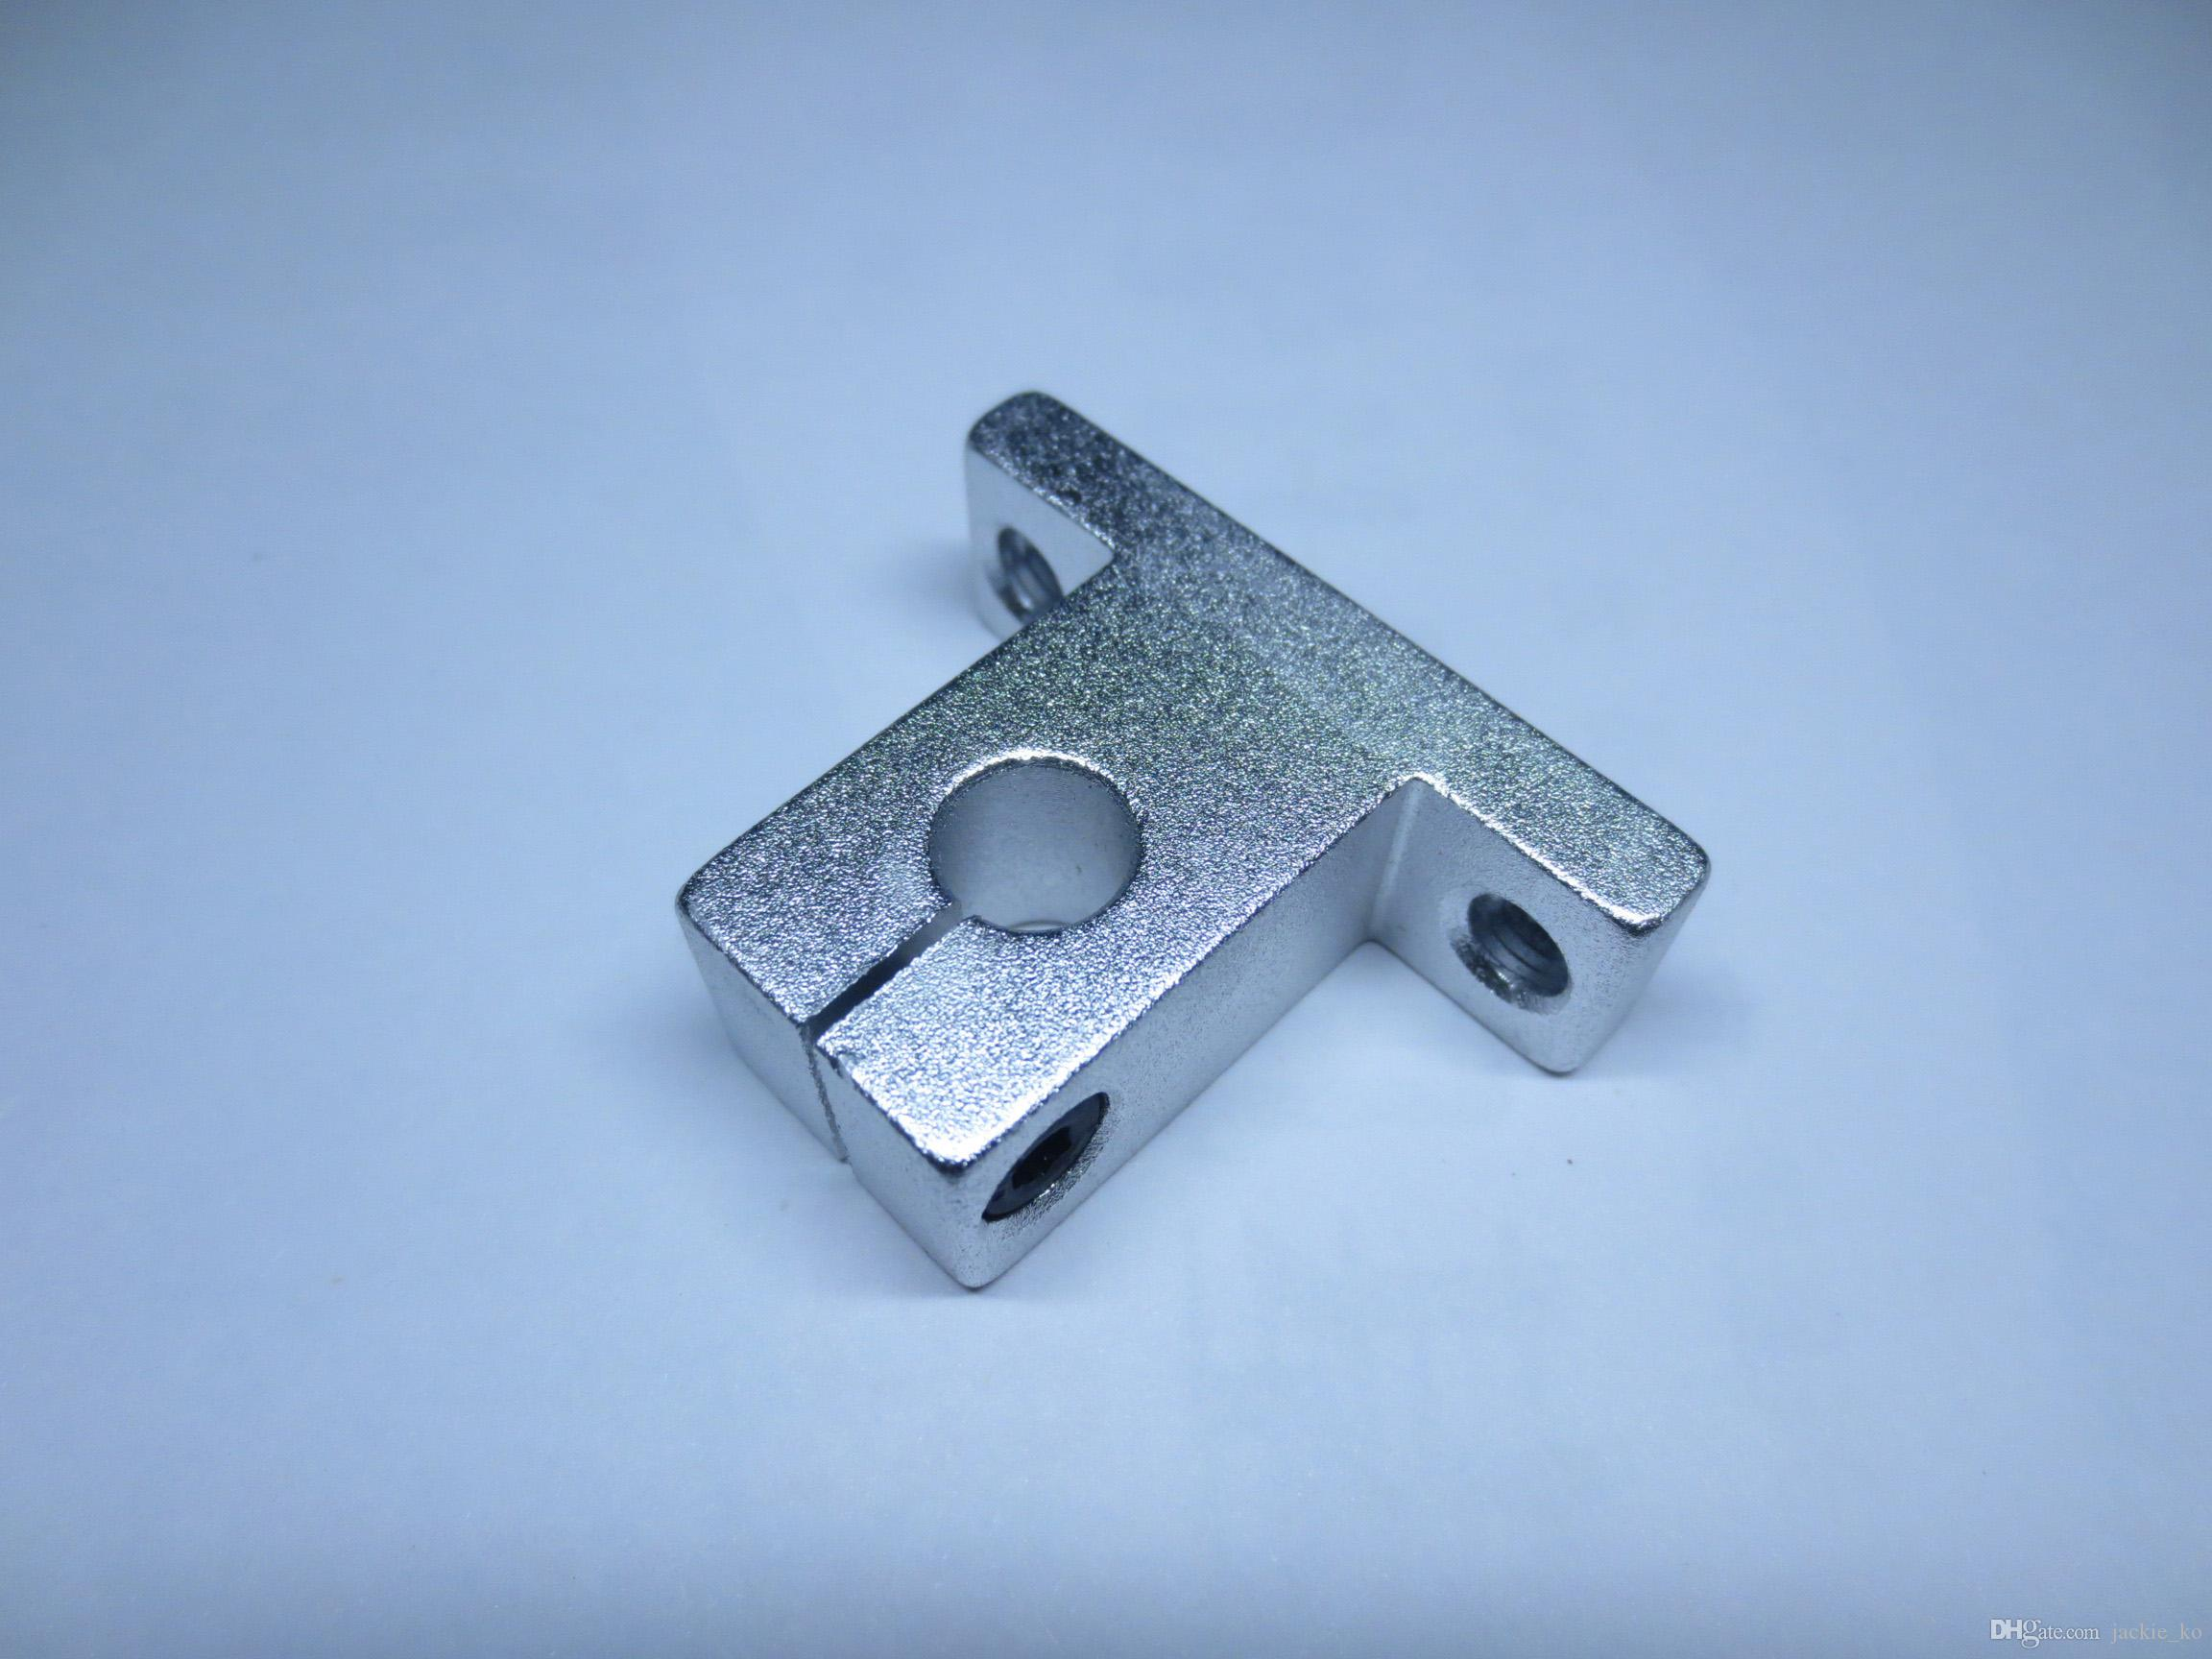 Bearing Pedestal Sk8 3d Printer Accessories Used To